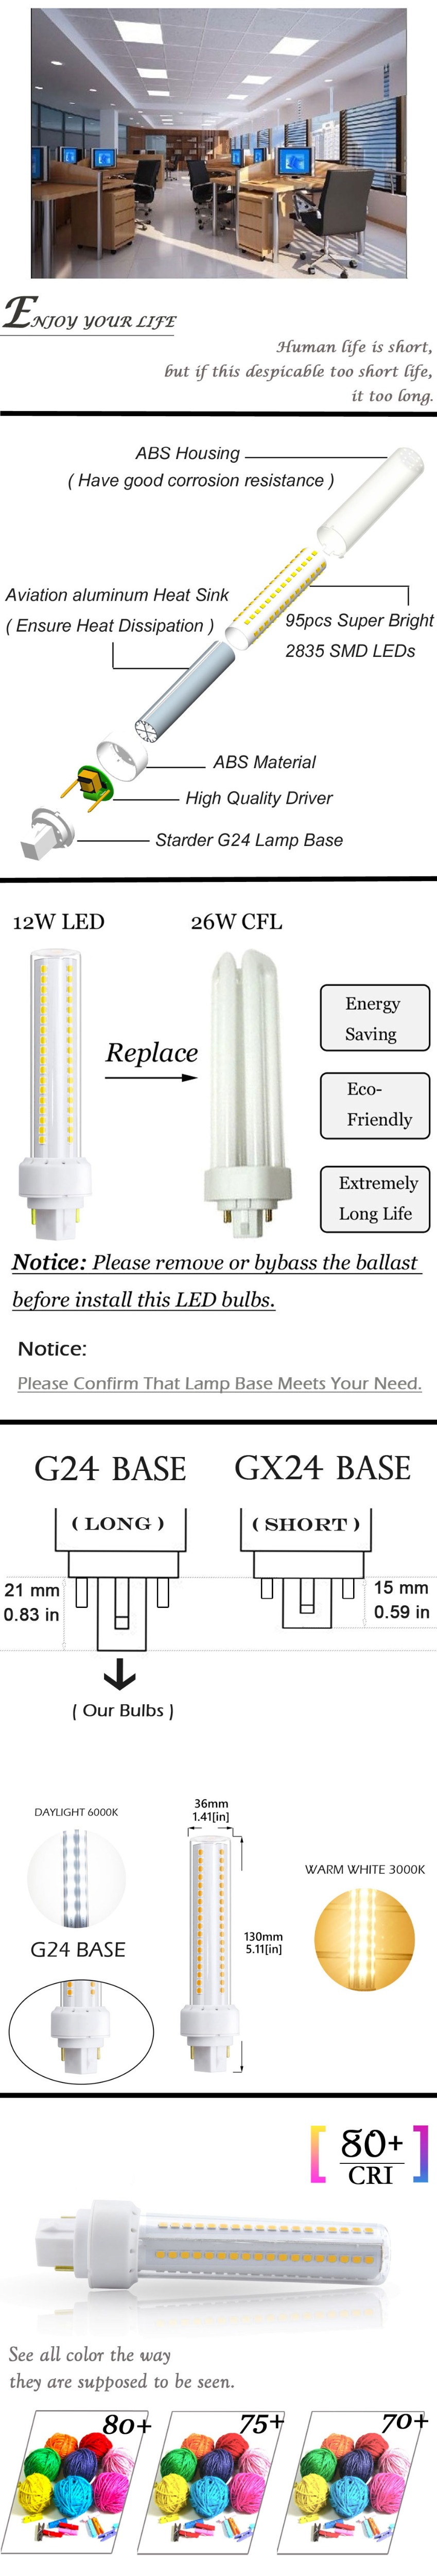 medium resolution of paquete de 2 led g24 pl l mpara